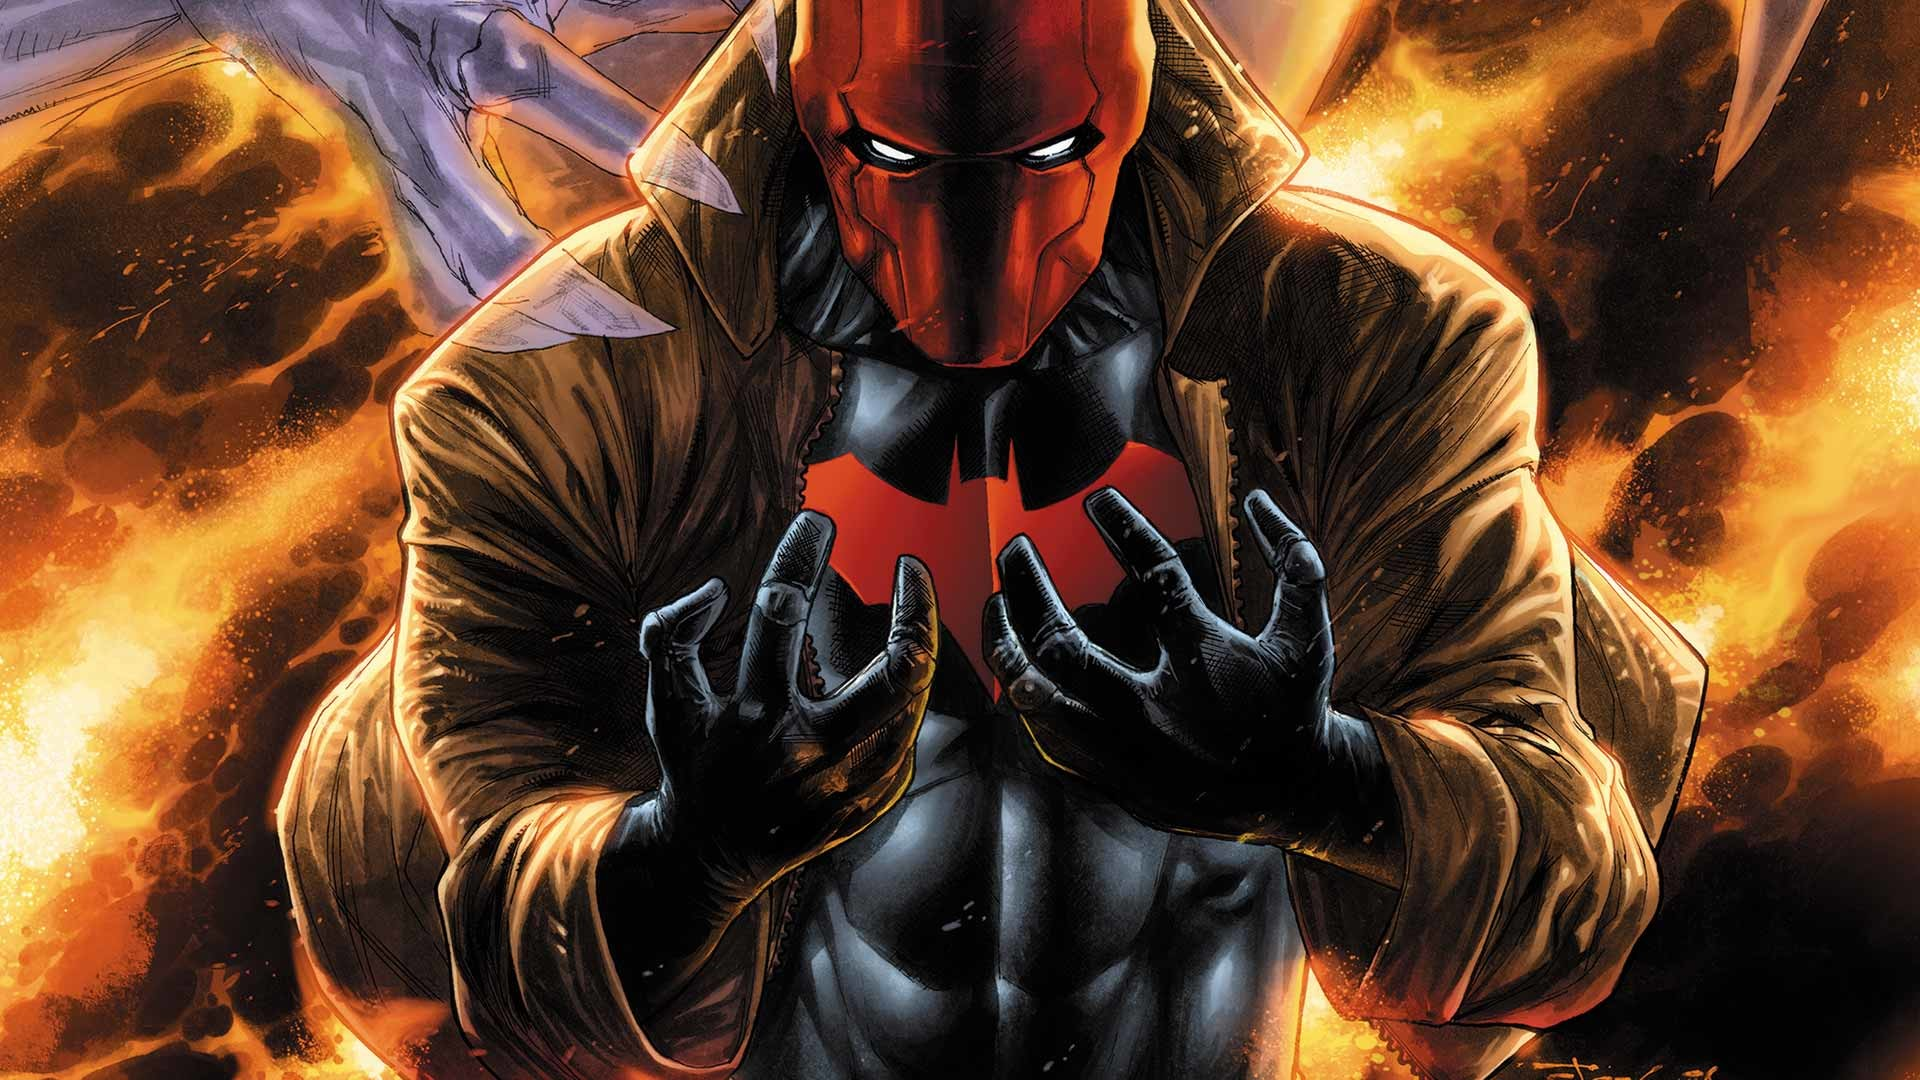 Red hood wallpaper hd 79 images - Hood cartoon wallpaper ...